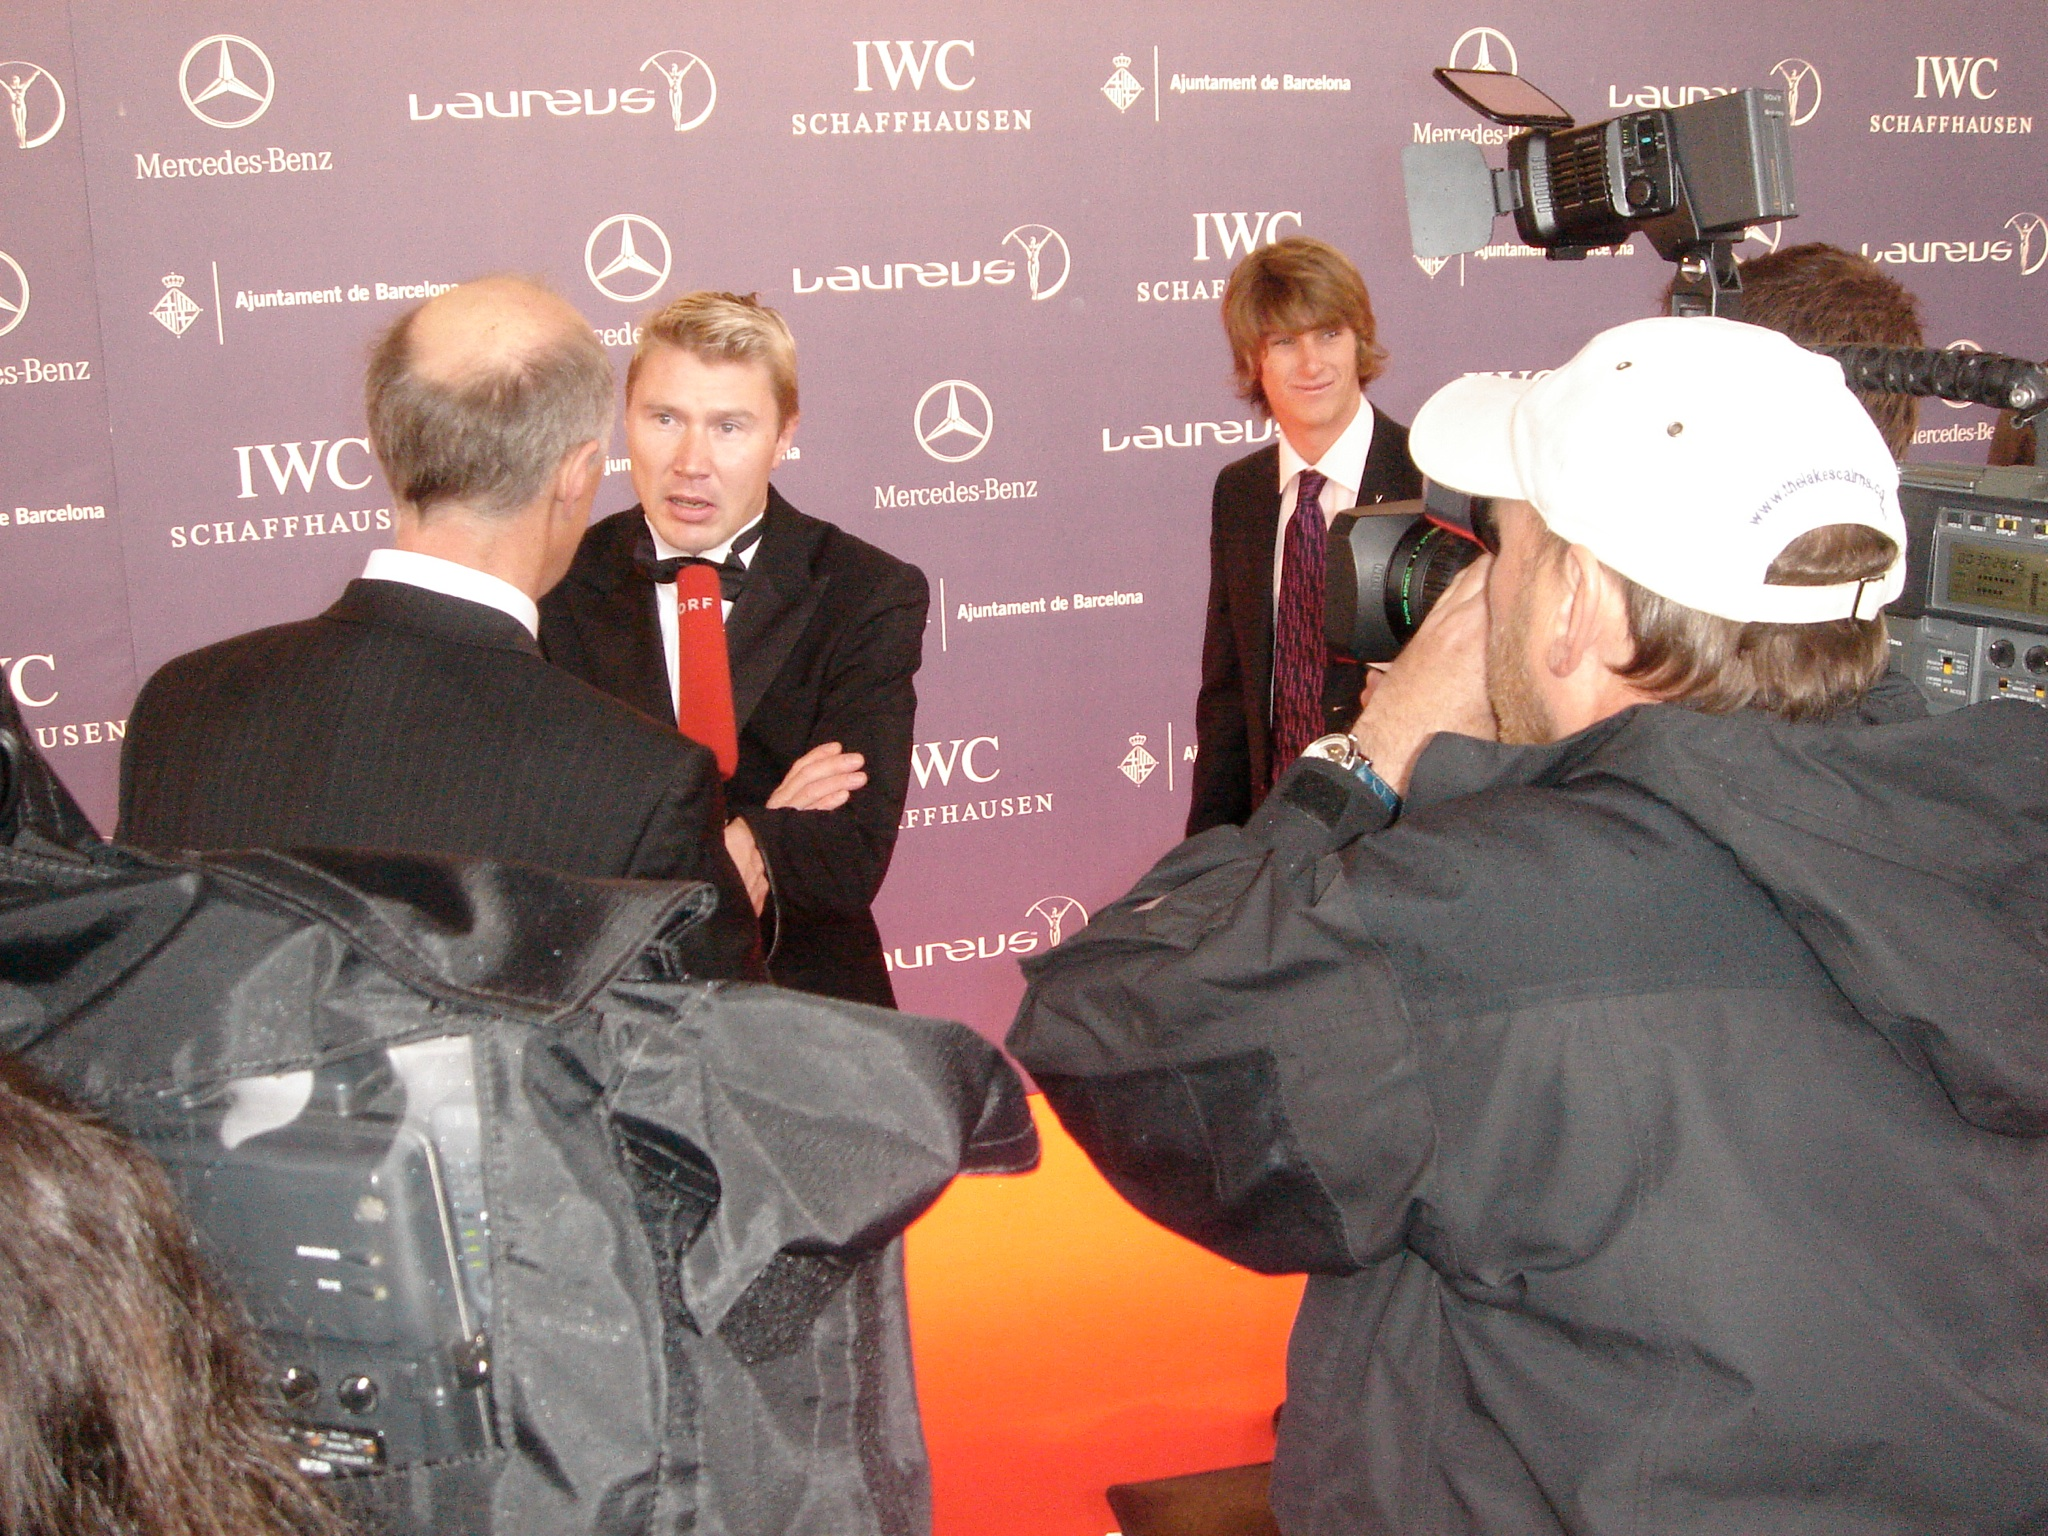 Laureus Sports Awards: M. Häkkinen, Shaun White